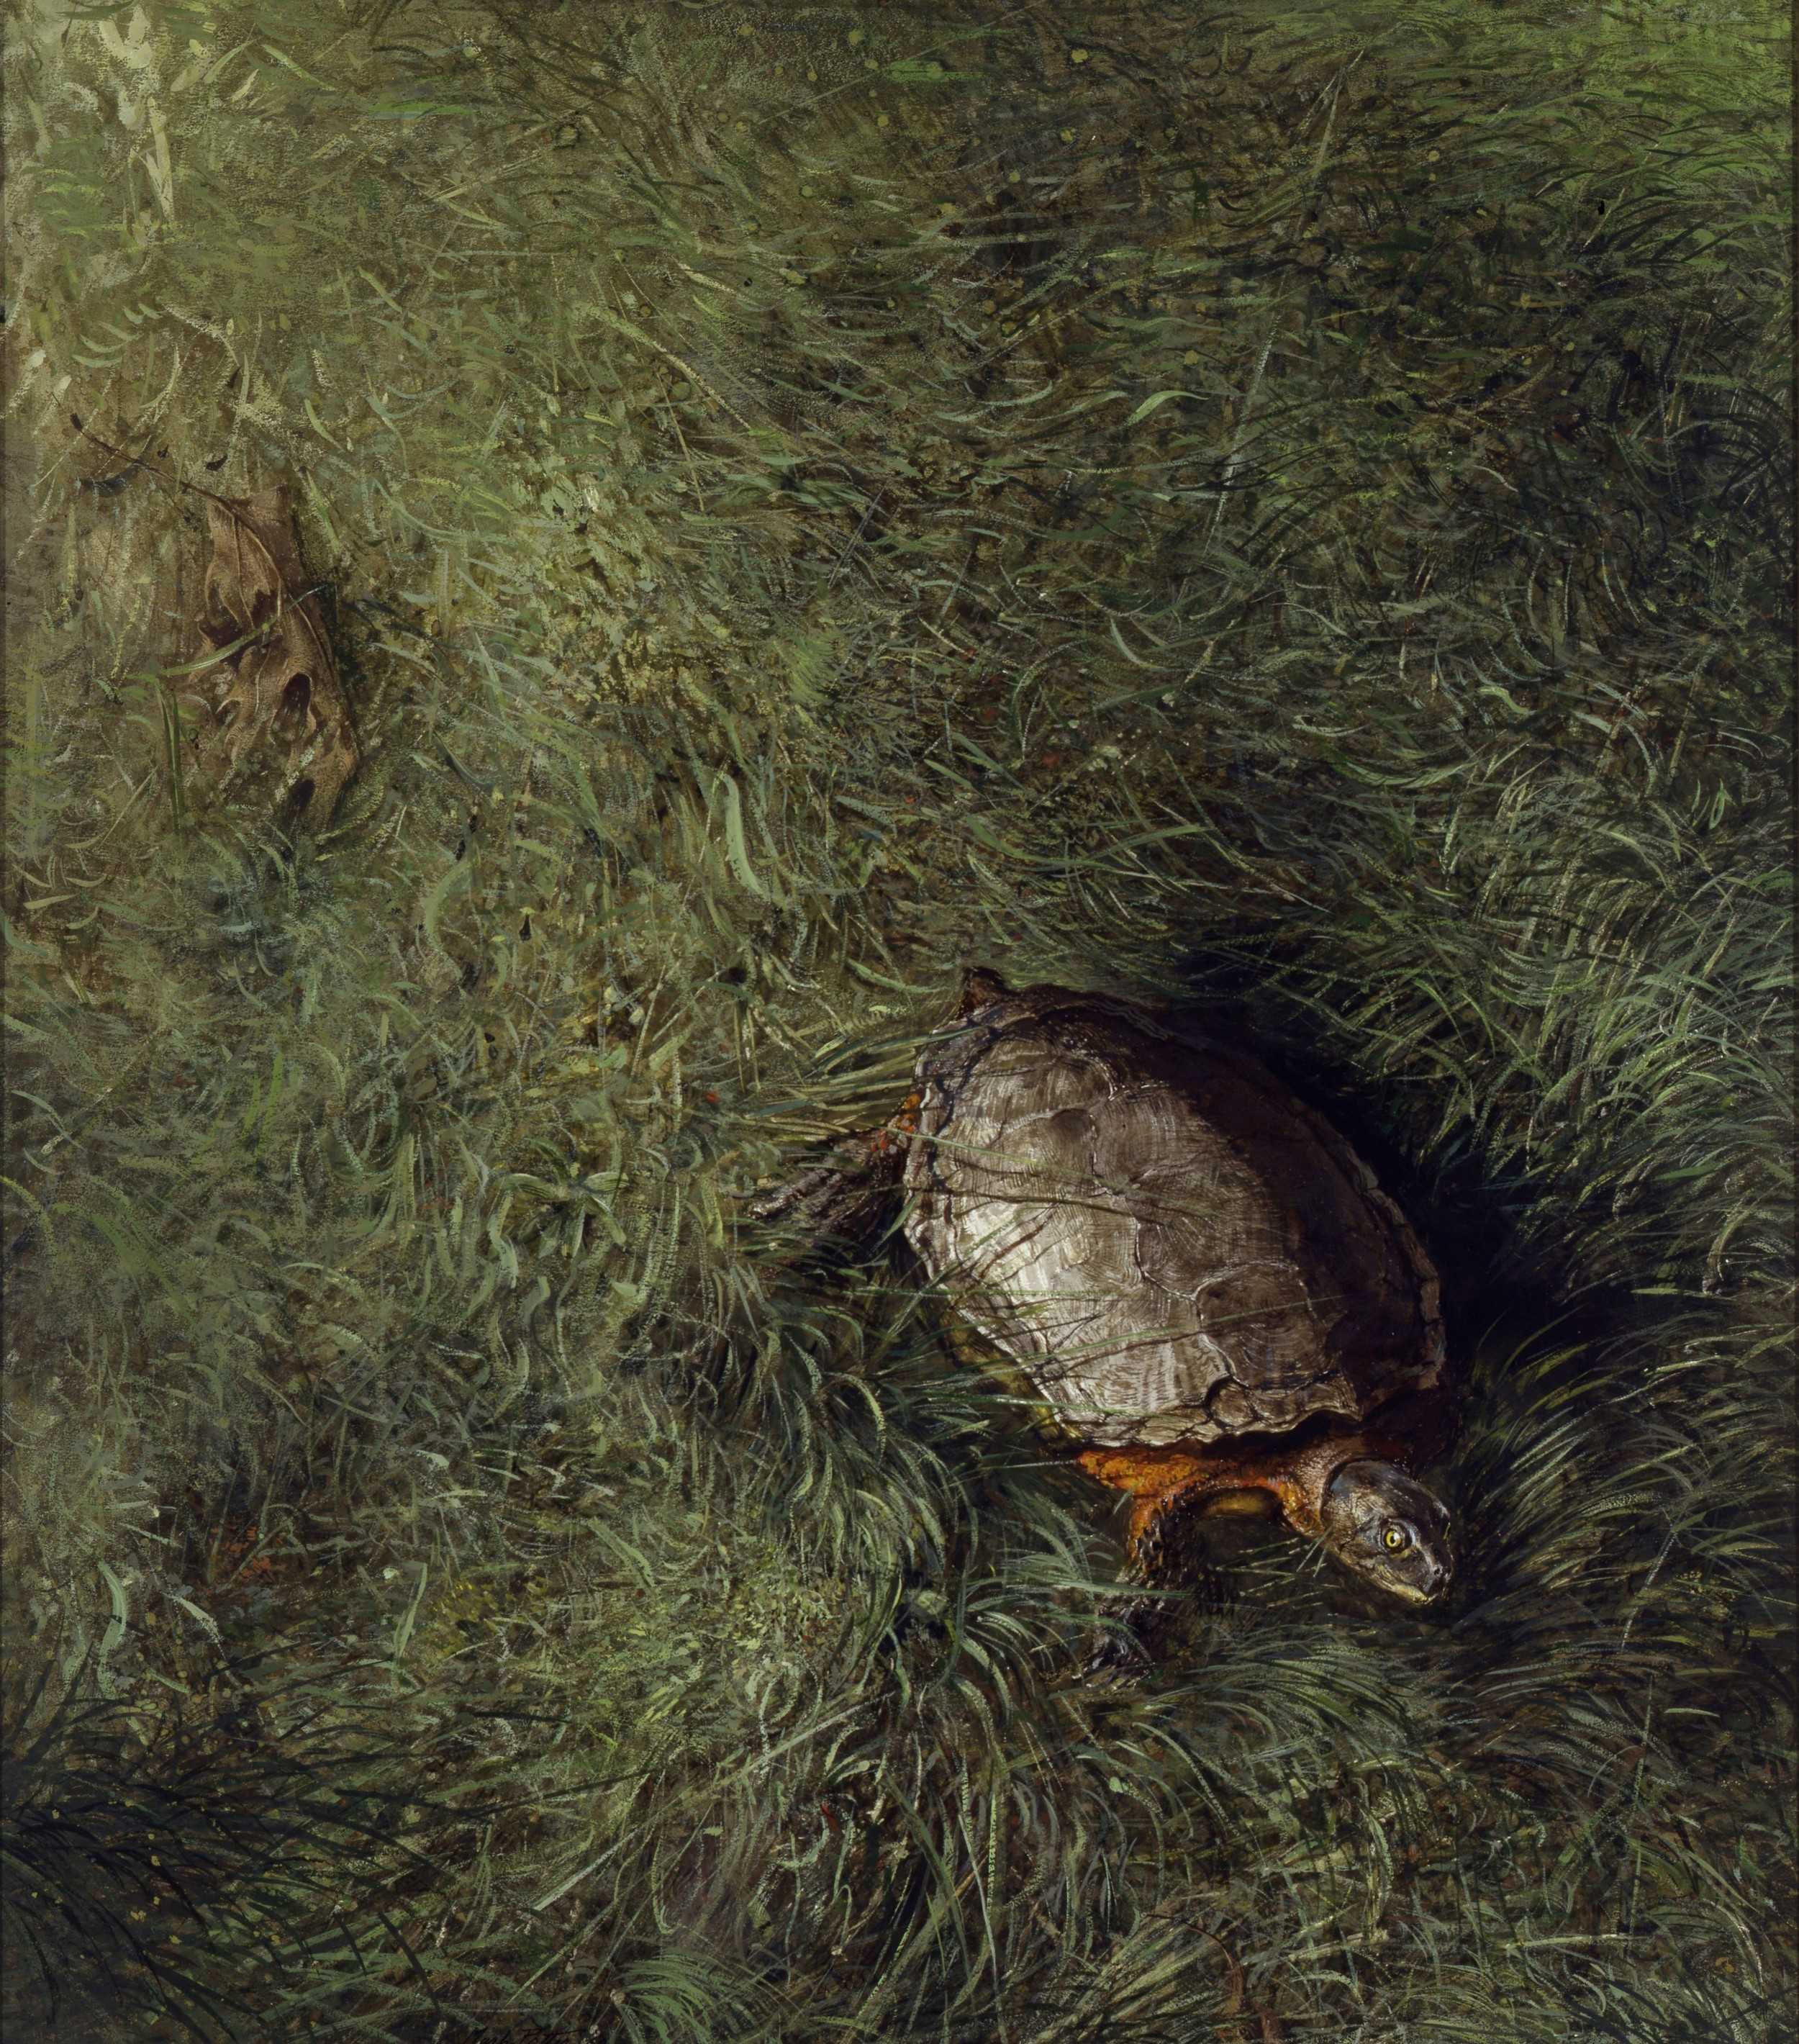 Turtle.      1964, watercolor drybrush. 21.3 x 18.7 inches. Collection of The Taft School.